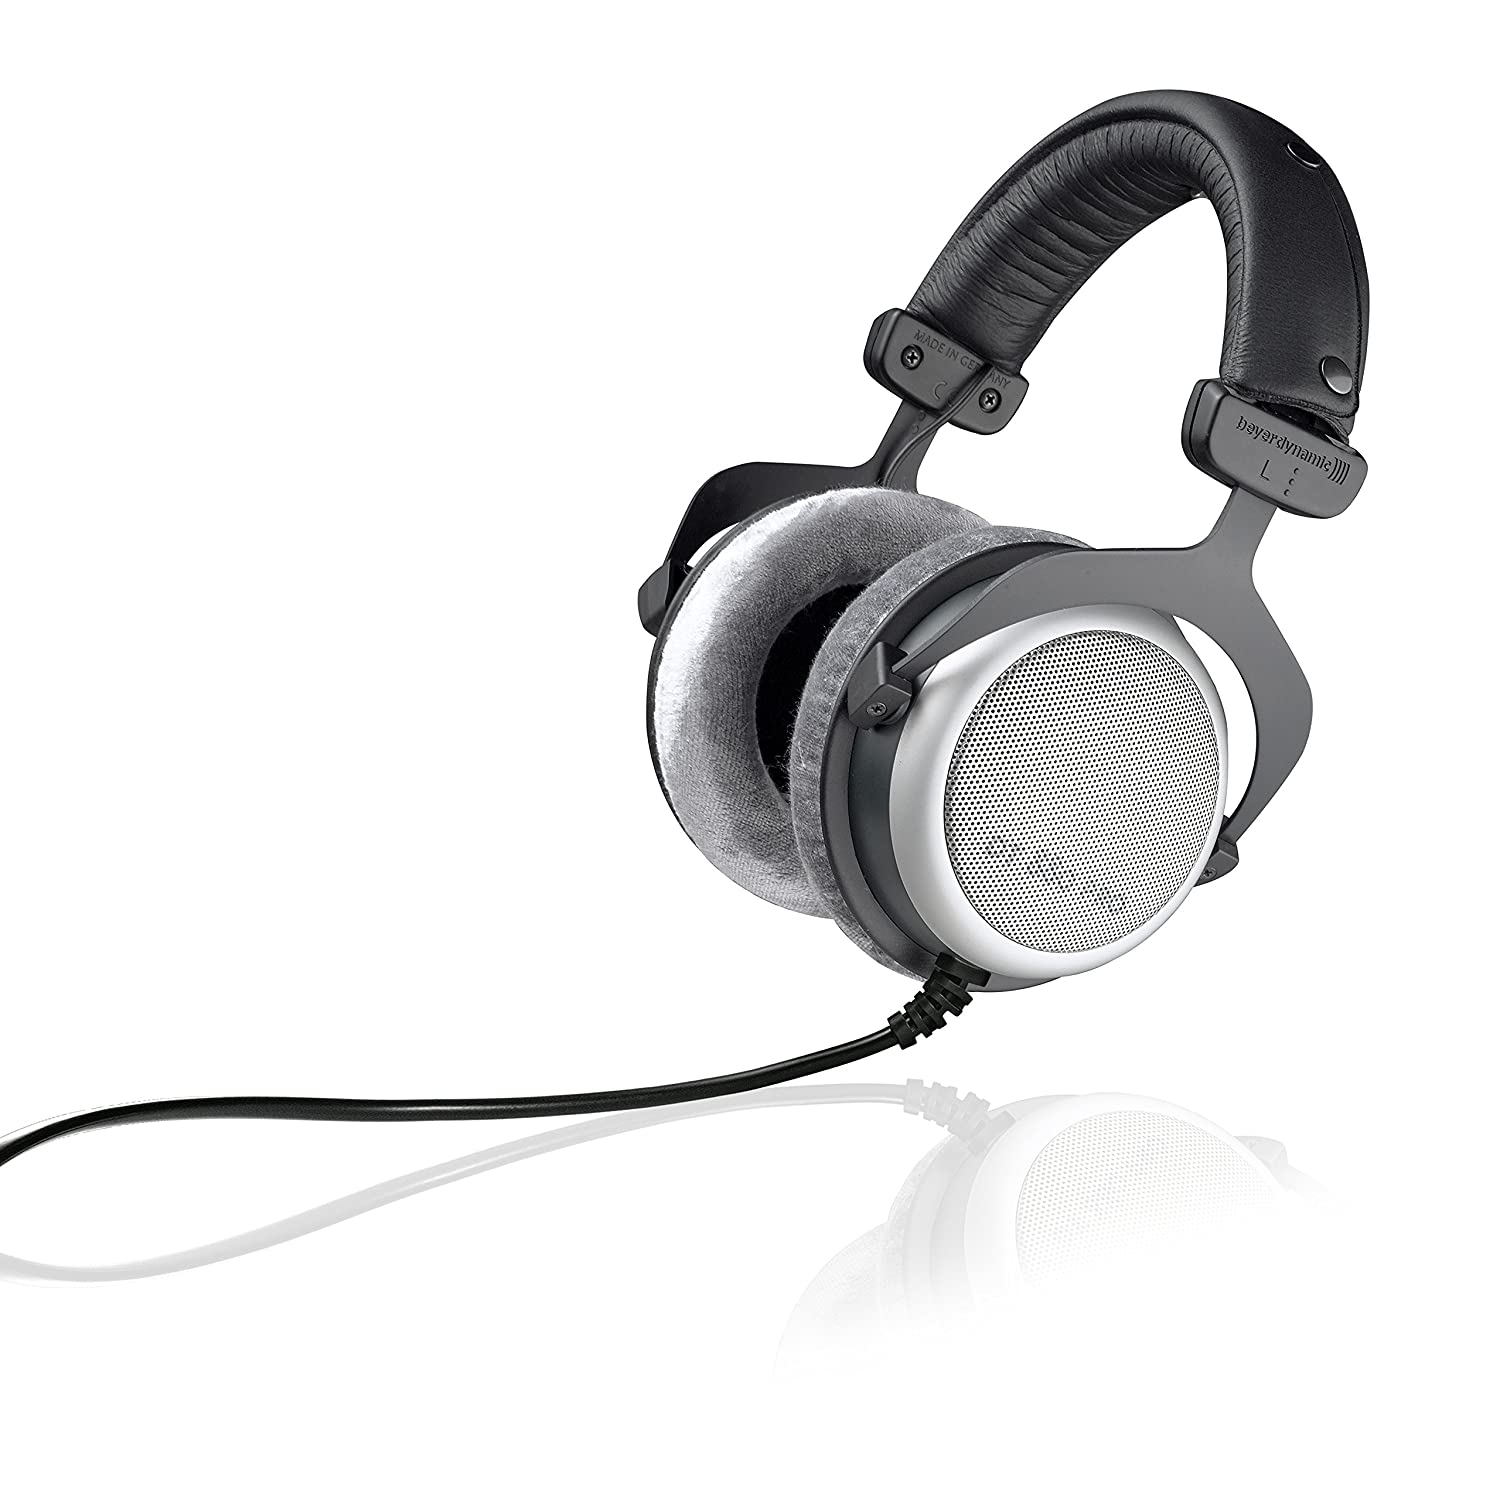 New Beyerdynamic DT-880-PRO-250 Semi-Open Studio Reference Monitor Headphones